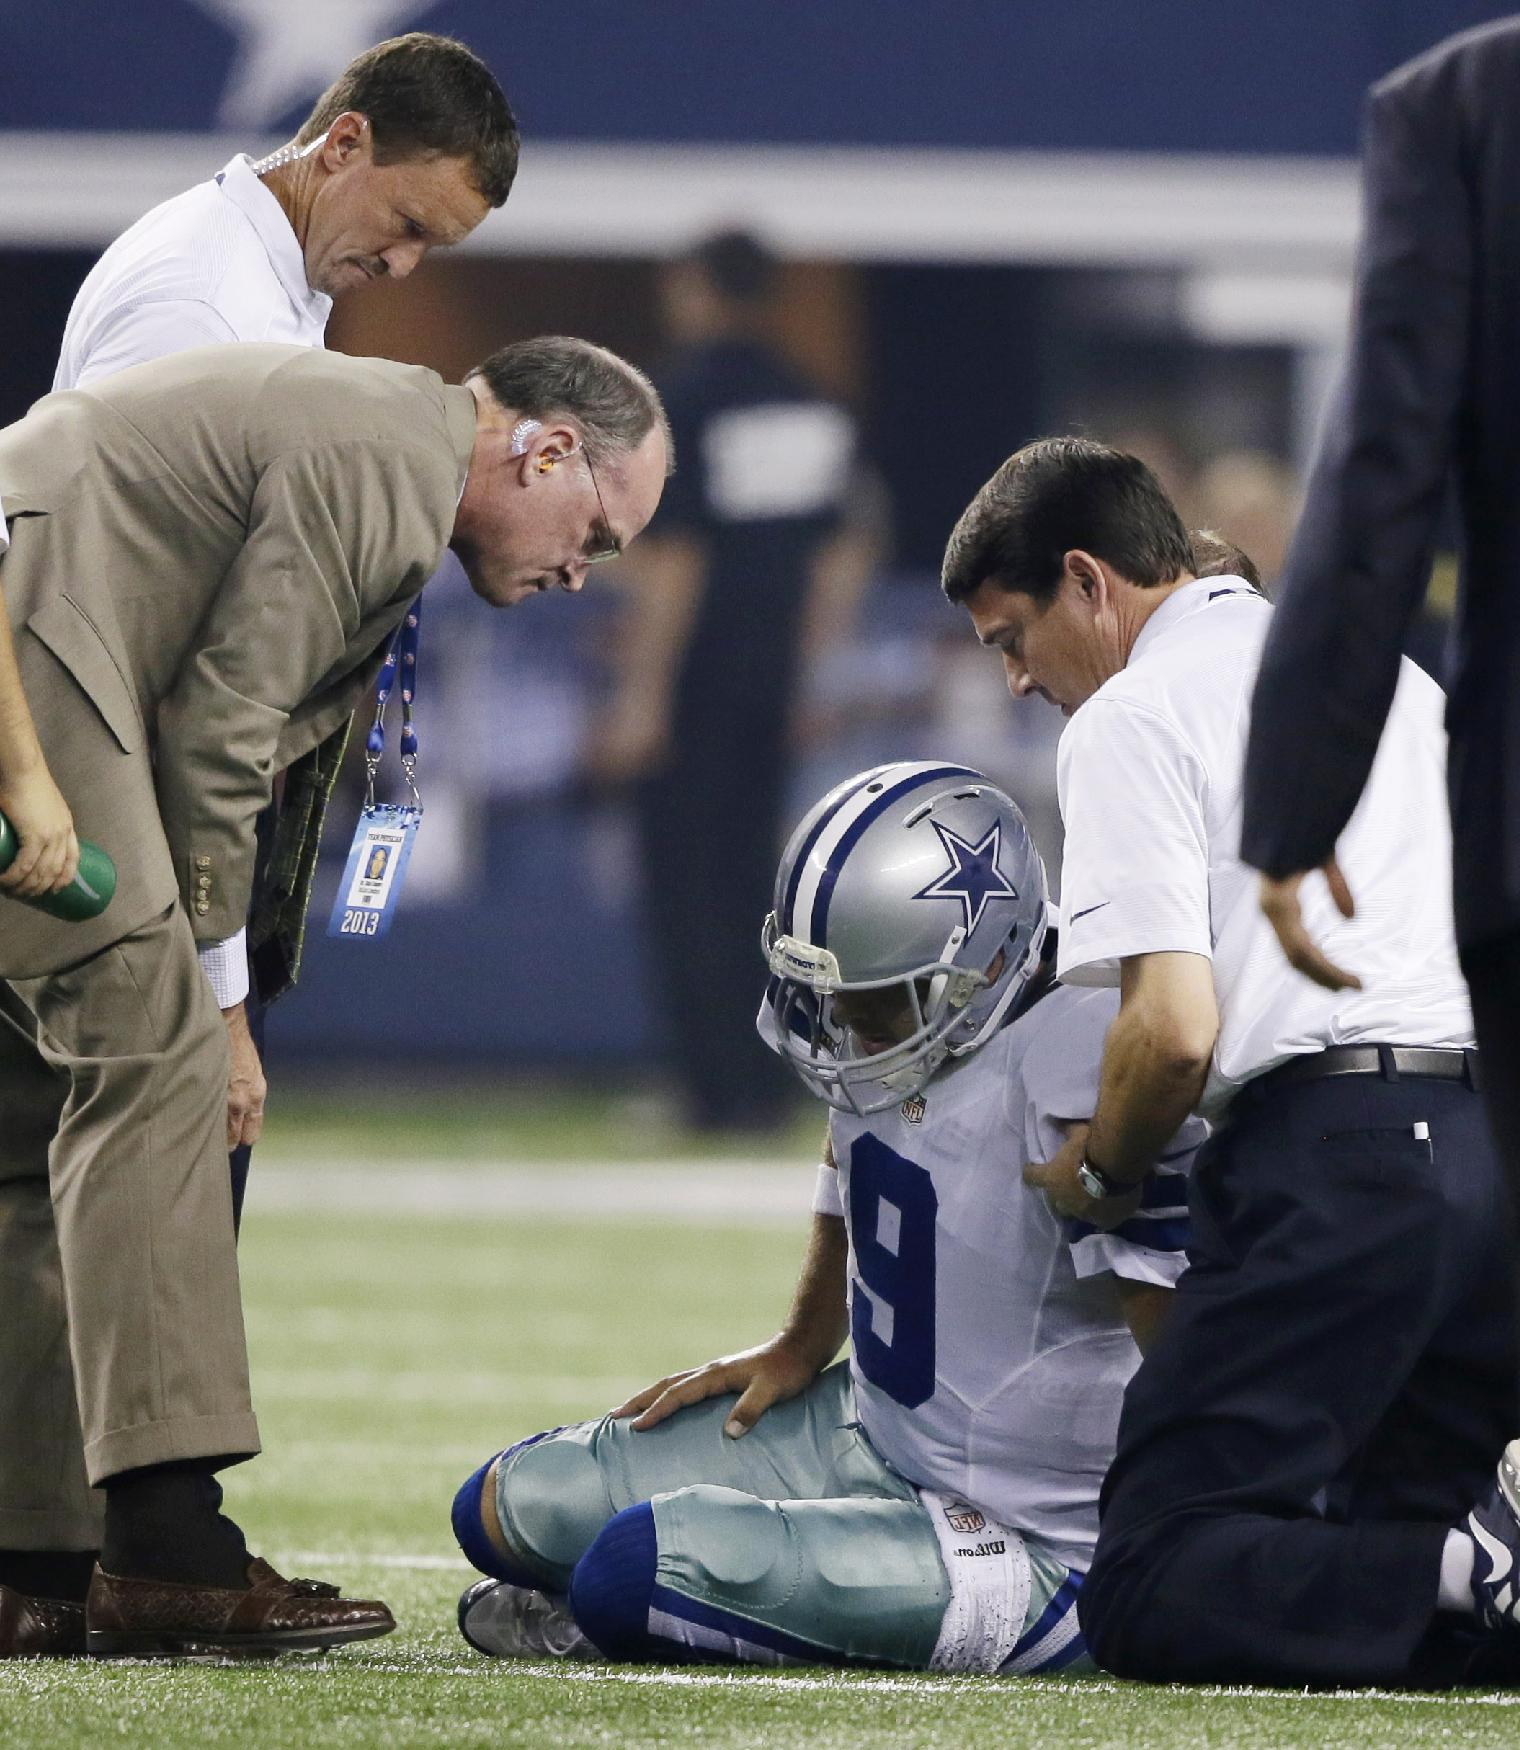 Tony Romo recovered from a hard lick he took from the Giants in the Cowboys' win on Sunday night. (AP)